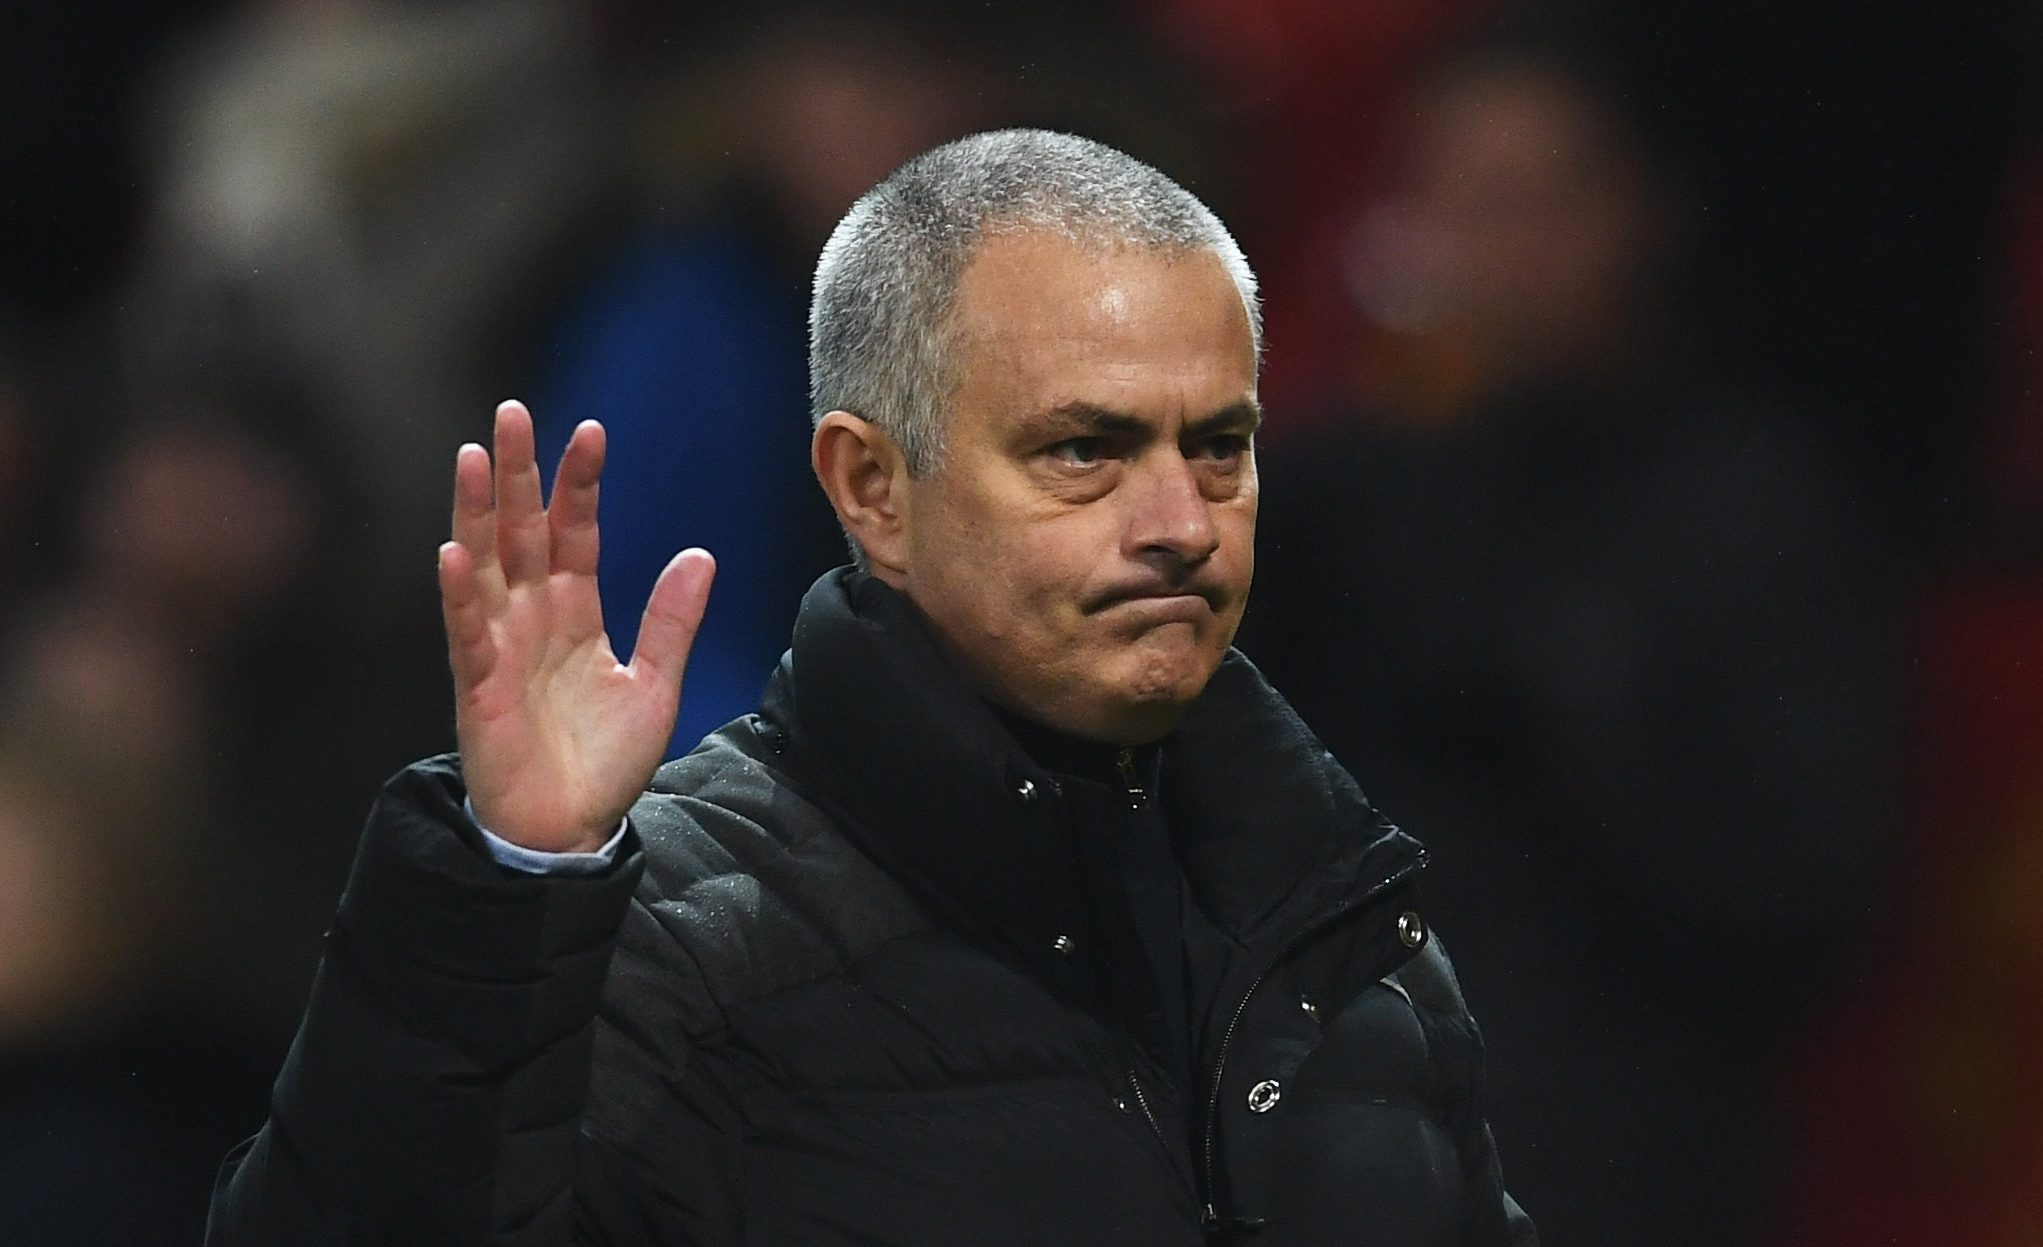 MANCHESTER, ENGLAND - JANUARY 29:  Jose Mourinho manager of Manchester United waves to fans after the Emirates FA Cup Fourth round match between Manchester United and Wigan Athletic at Old Trafford on January 29, 2017 in Manchester, England.  (Photo by Laurence Griffiths/Getty Images)